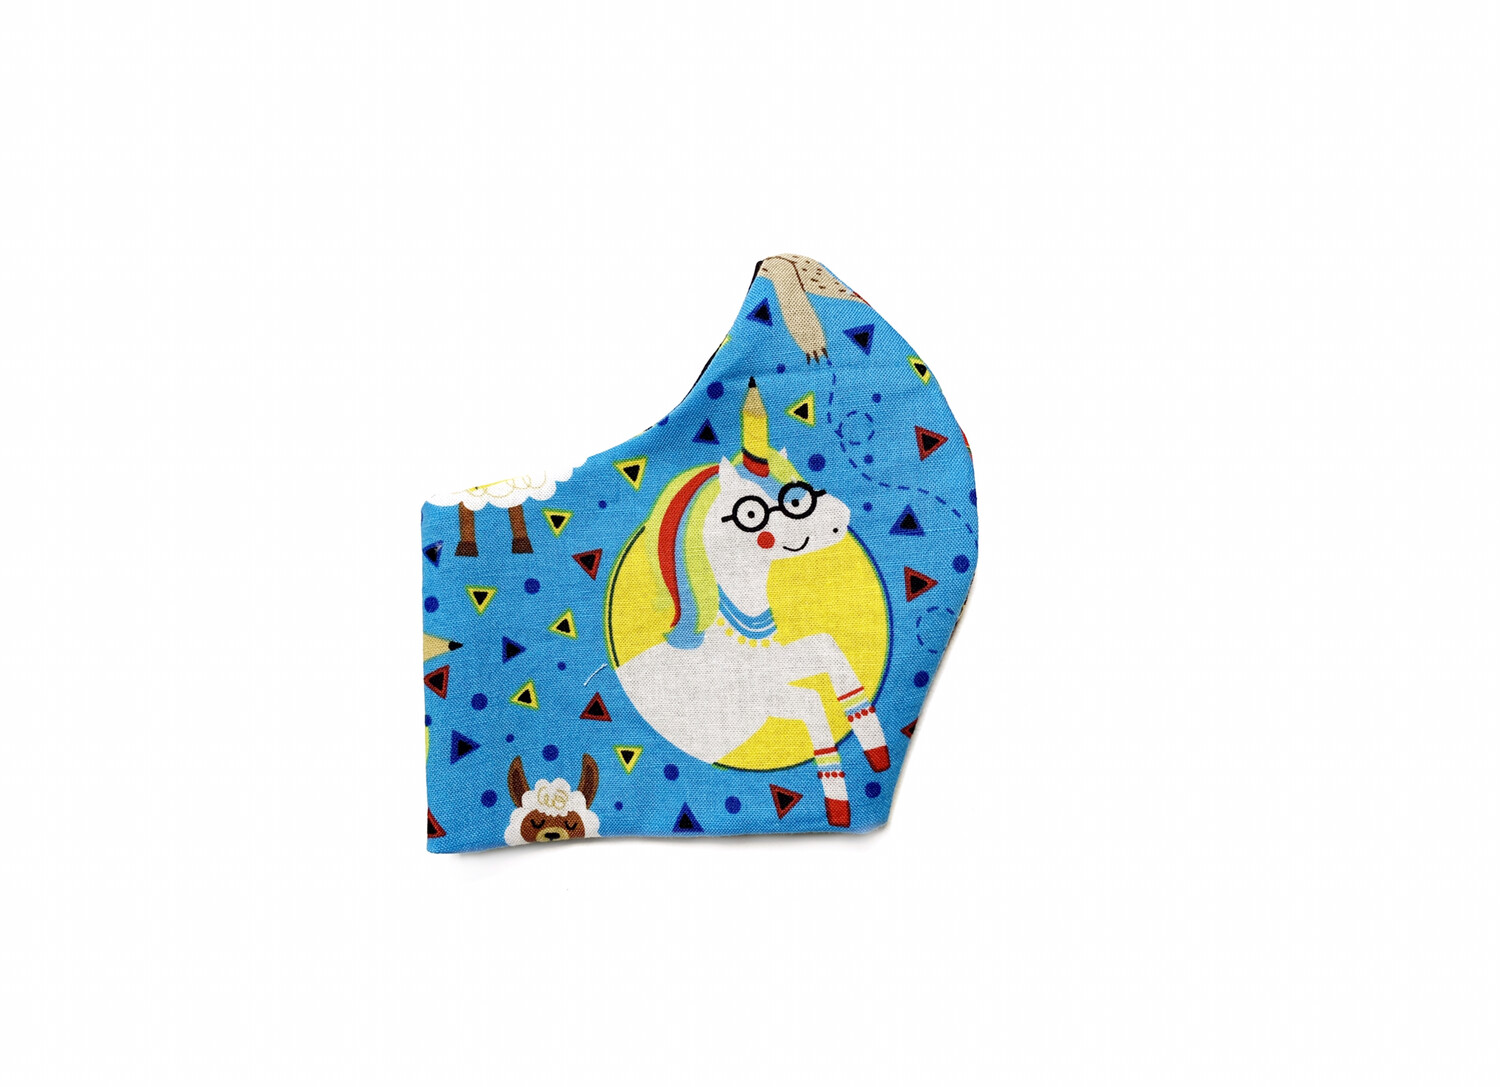 School Print With Llamas & Friends - Cotton Face Mask with Filter Pocket